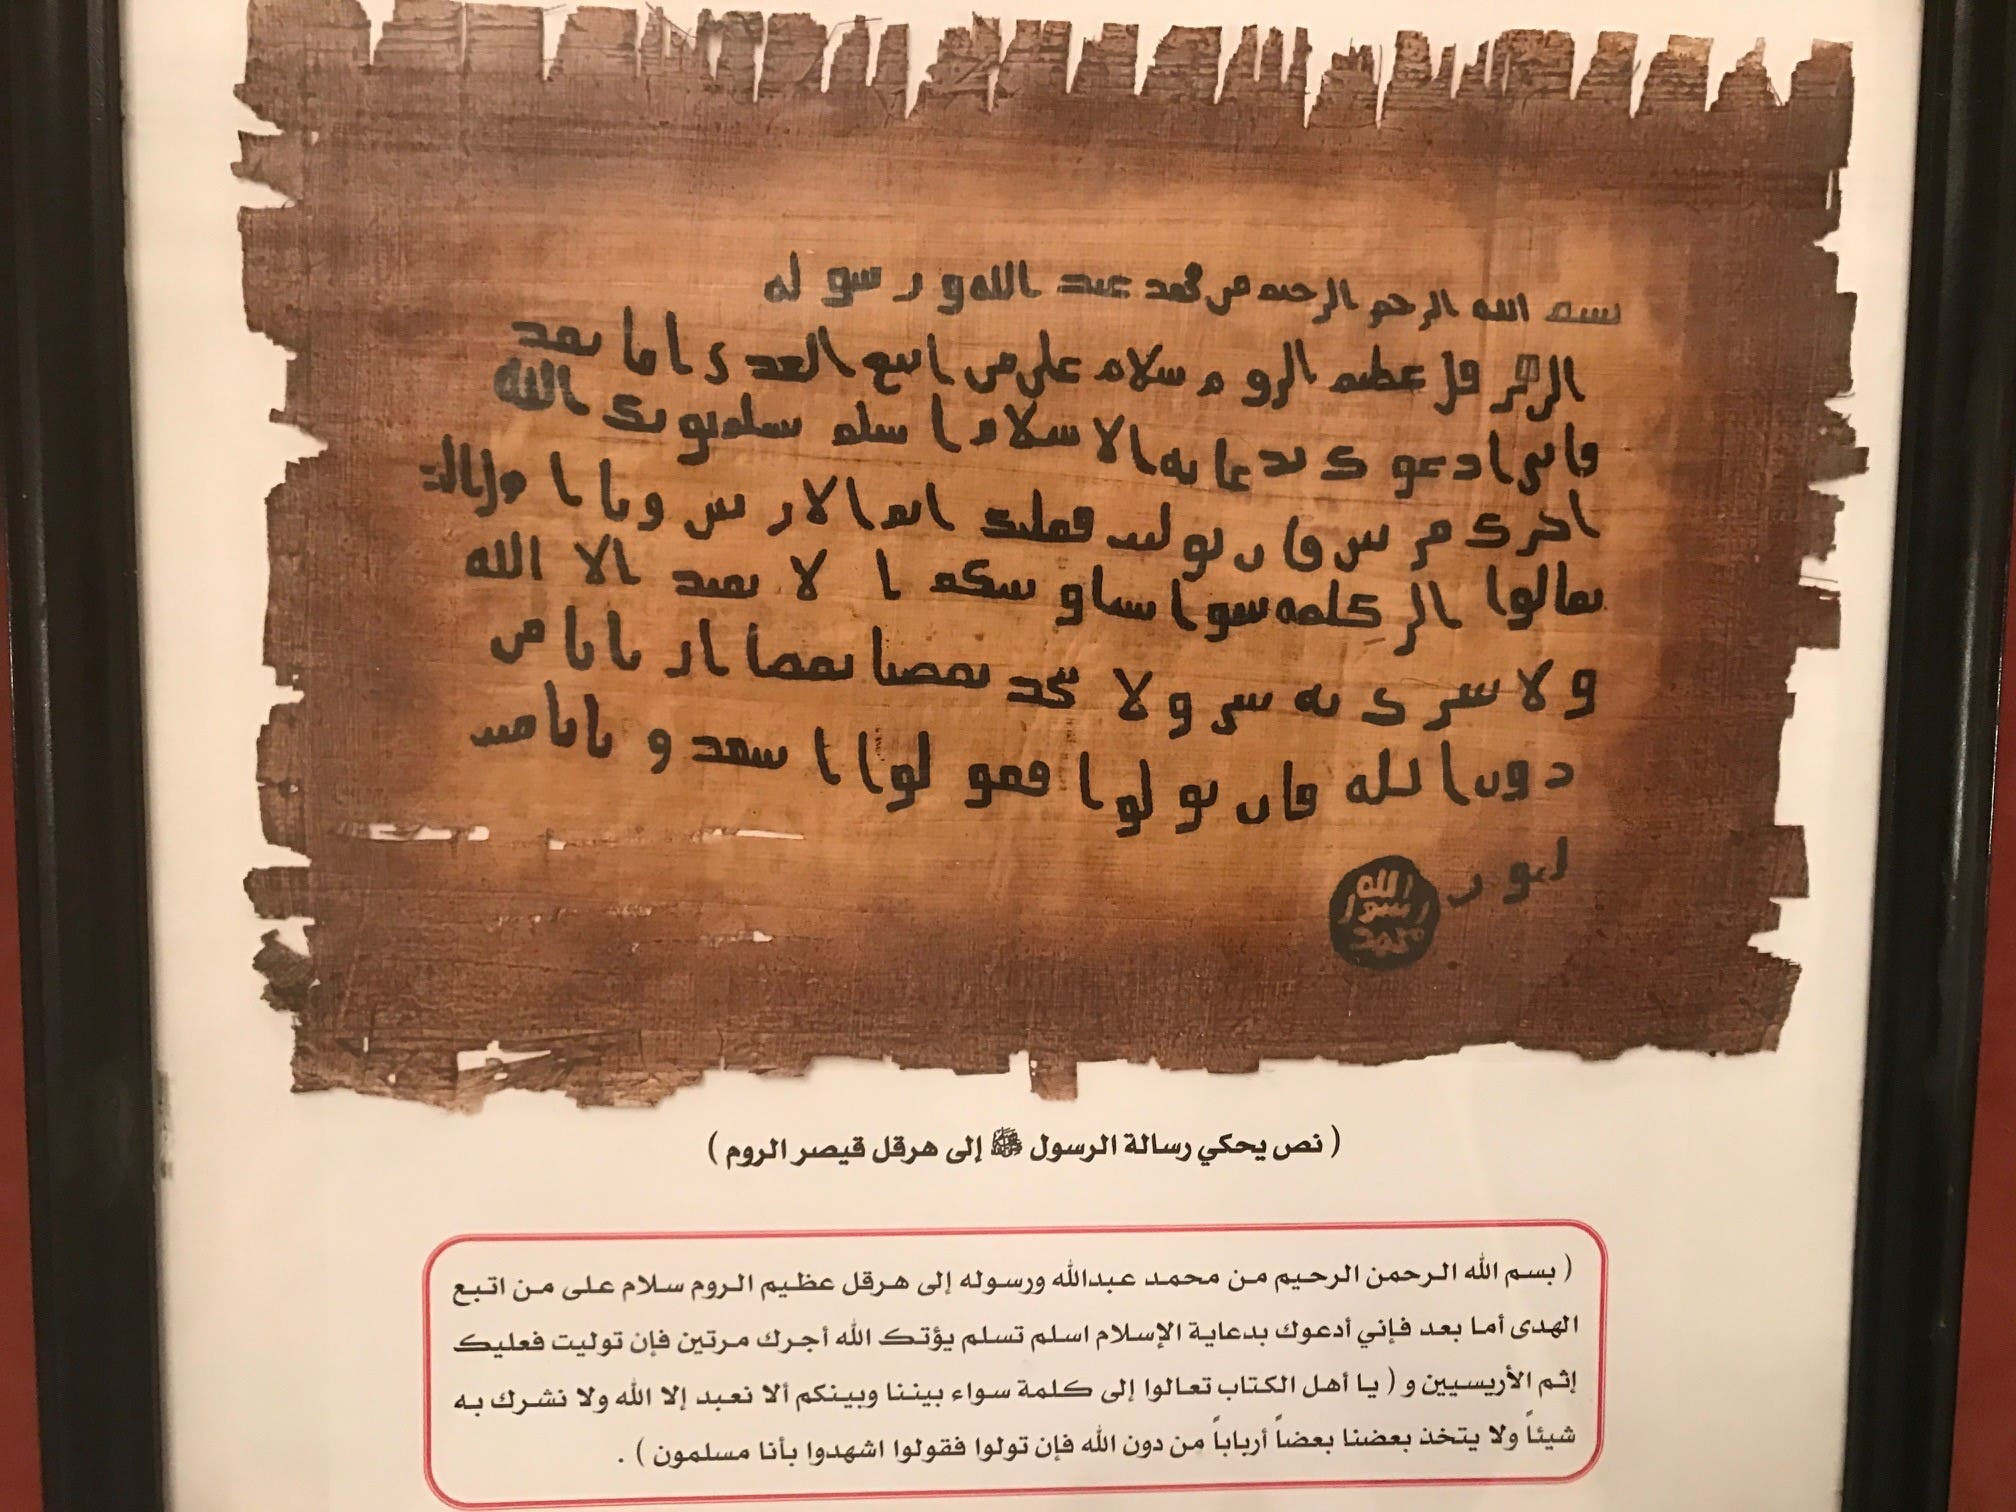 b83f60998 According to some historic narratives, Chosroes of Persia tore the  prophet's letter. When the prophet heard that, he promised the destruction  of Chosroes ...